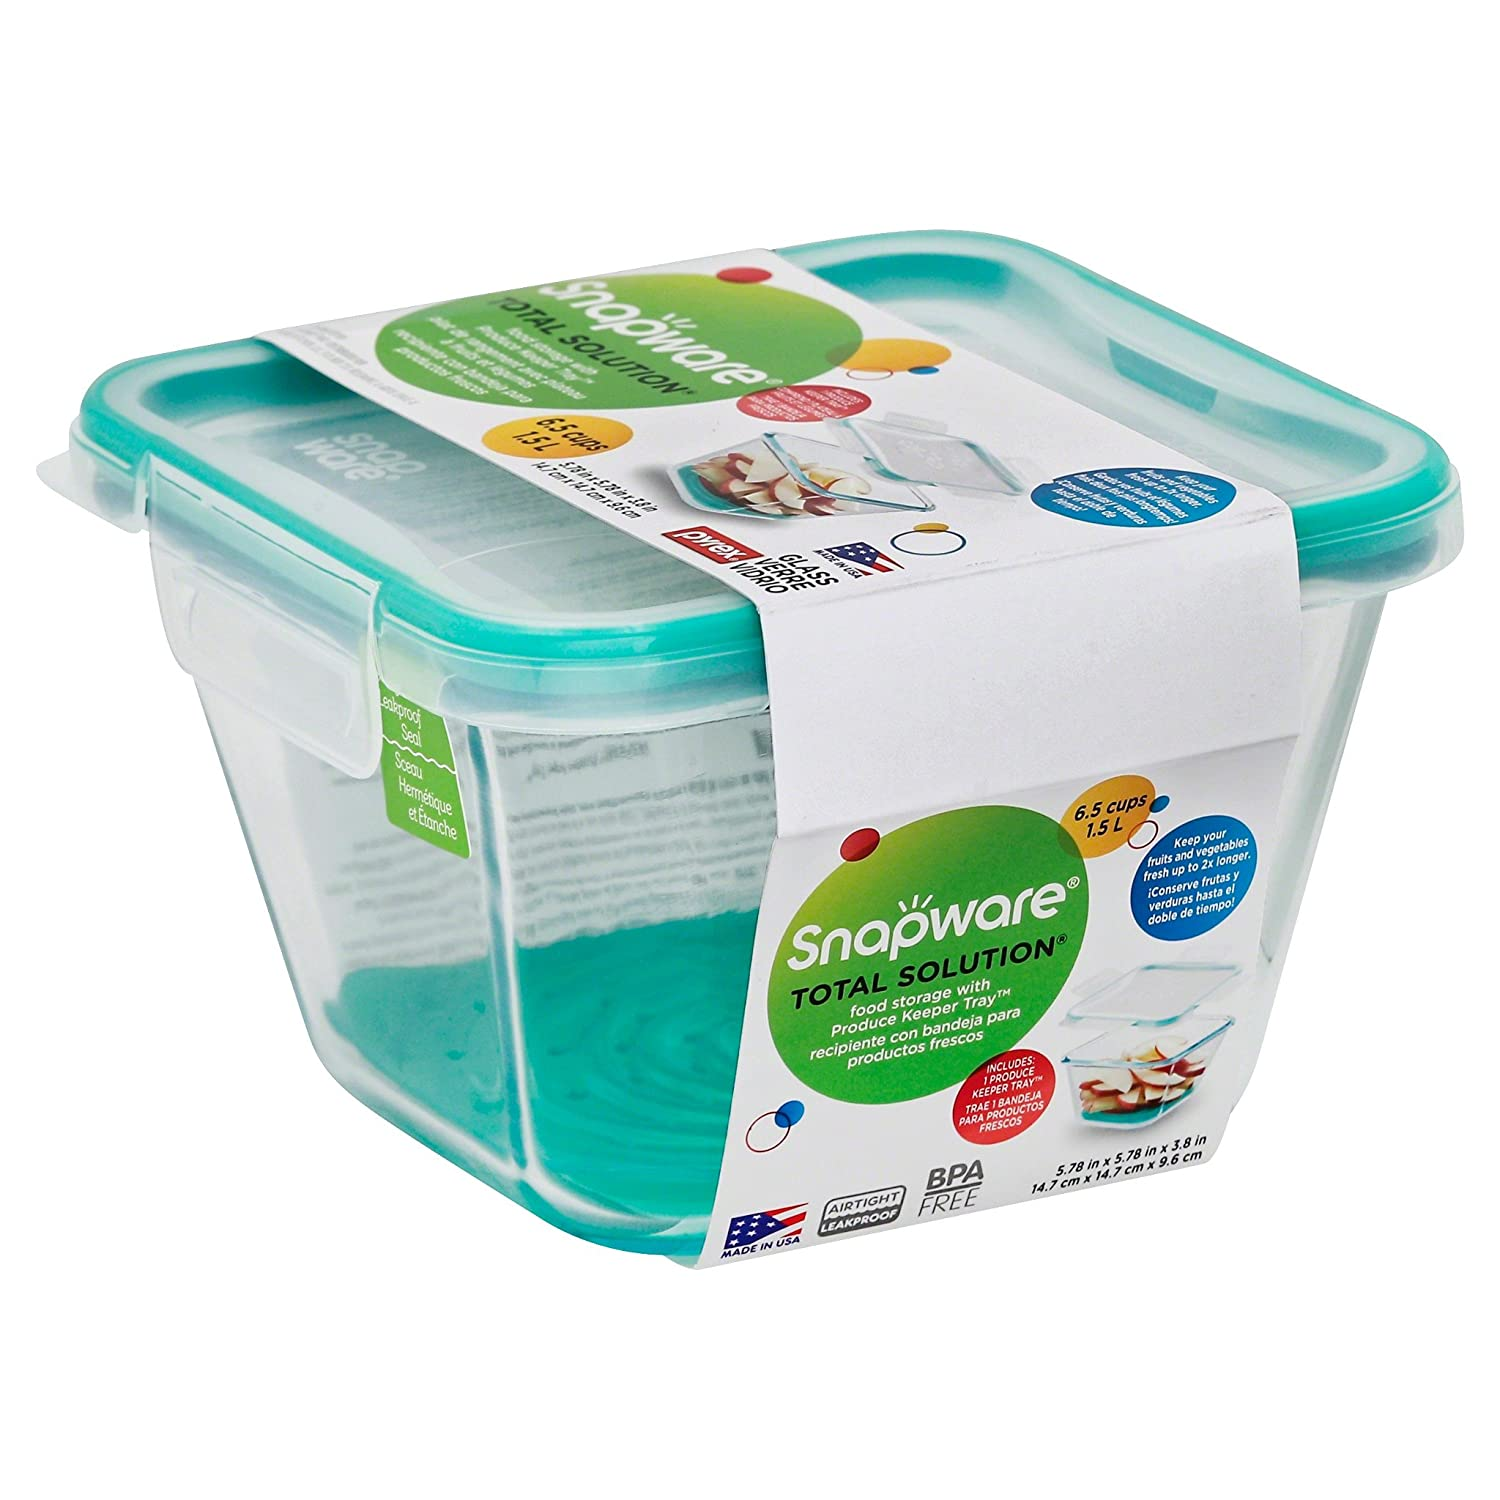 Amazon.com - Snapware 884408028503 1120320 6.5 Cup Square Pyrex Storage W/Green Produce Keeper, One Size -